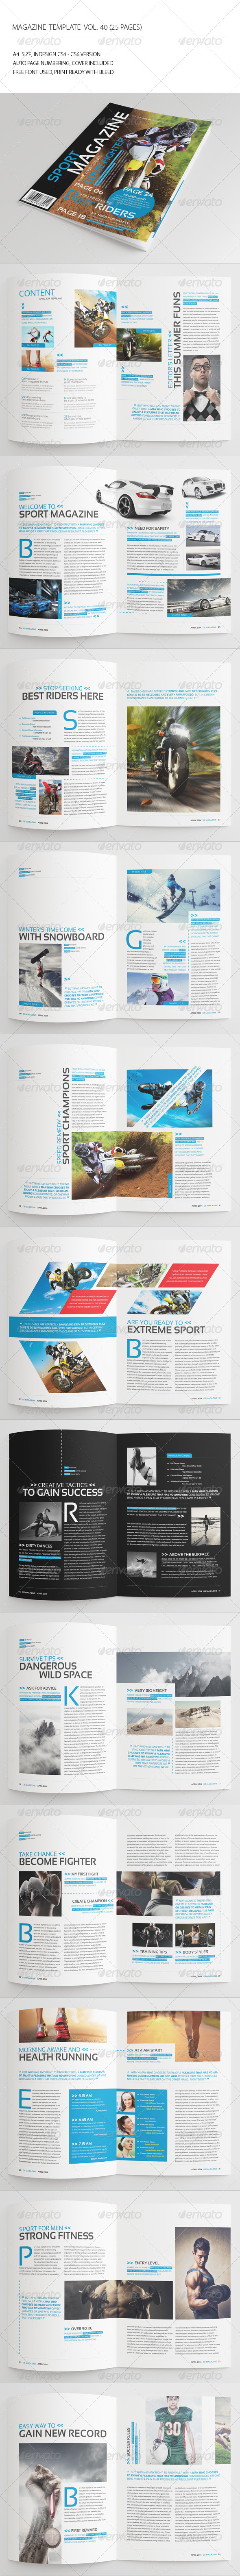 25 Pages Sport Magazine Vol40 - Magazines Print Templates